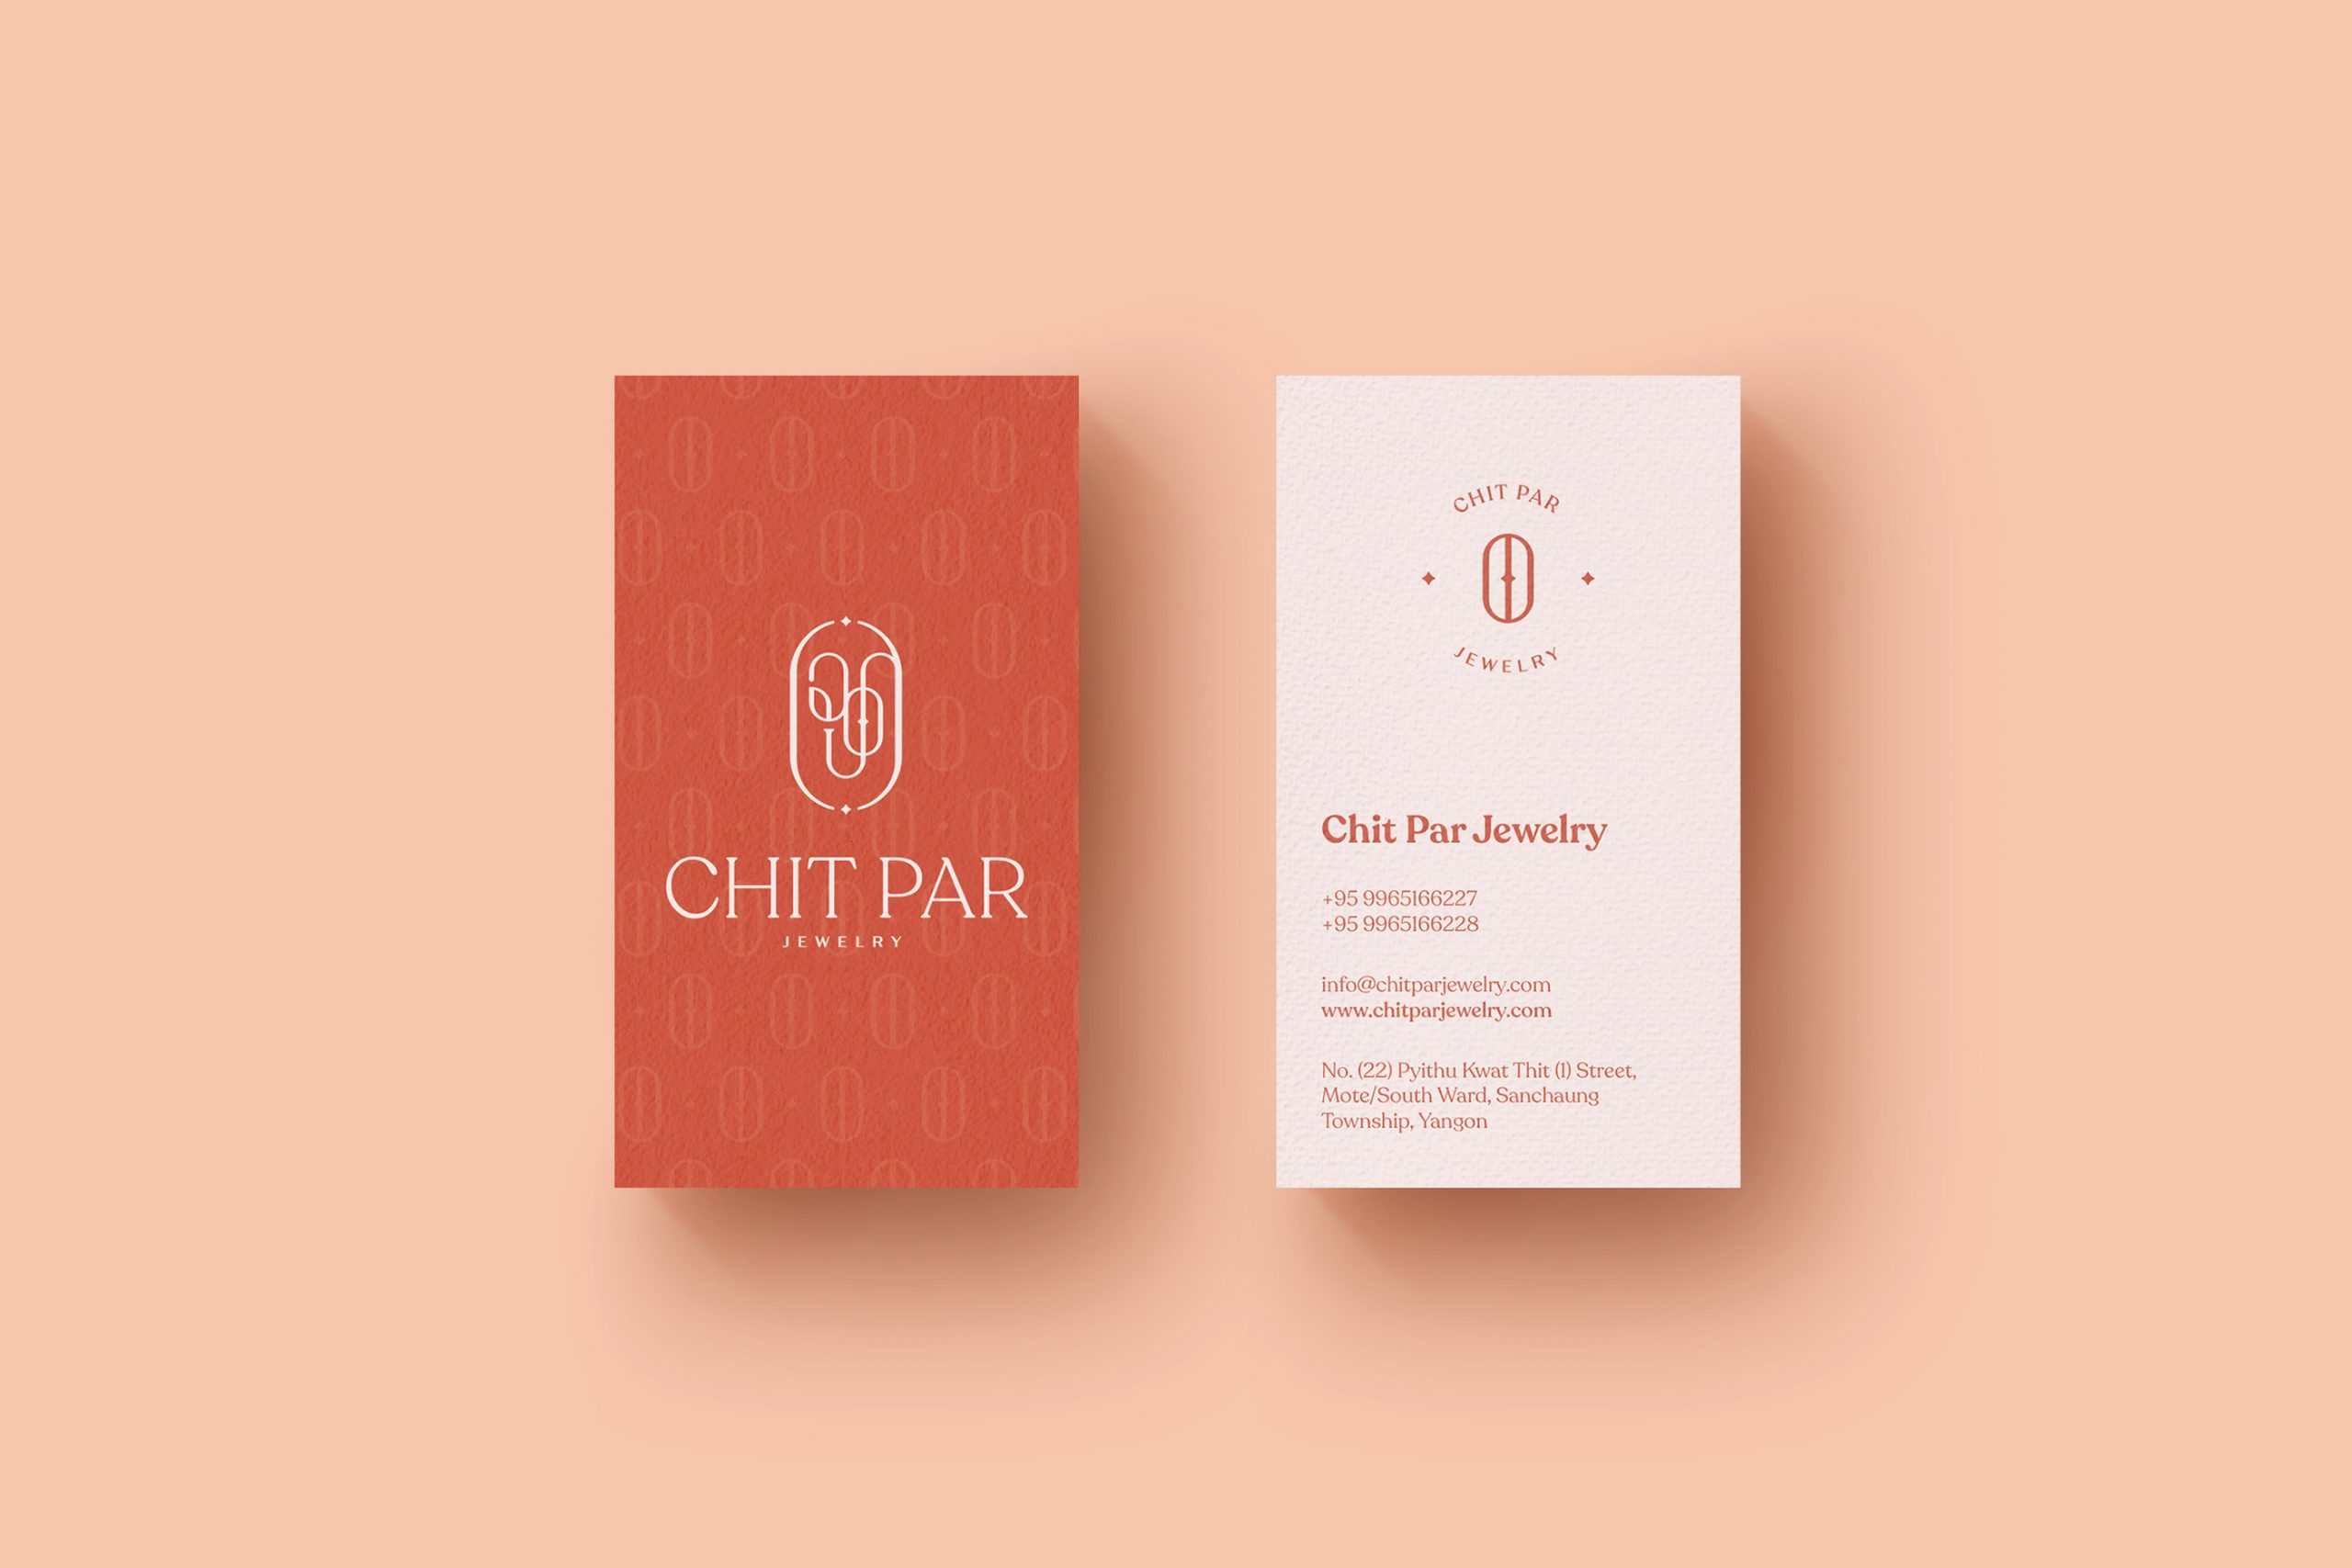 Chit Par Jewelry Business Cards1